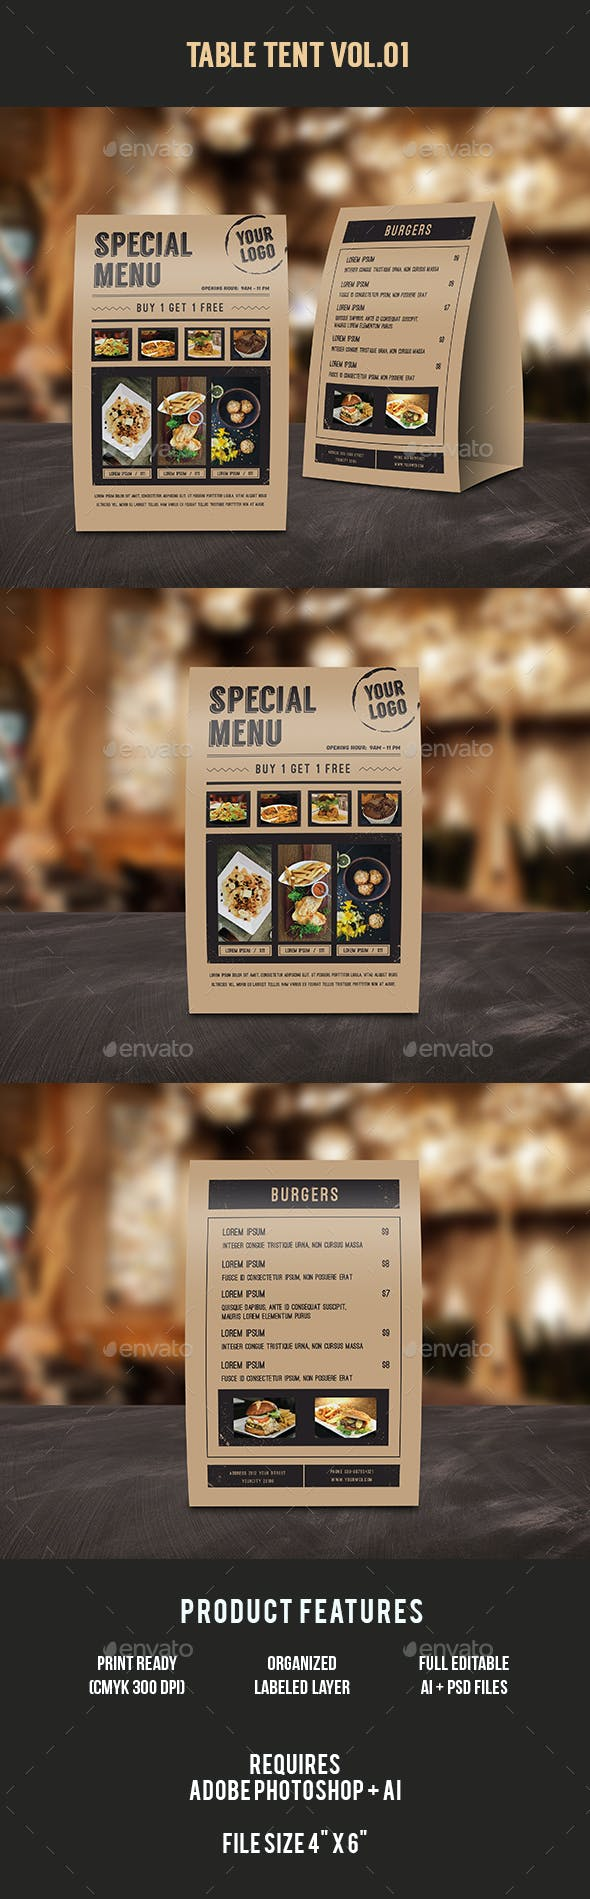 food menu table tent by infinite78910 graphicriver